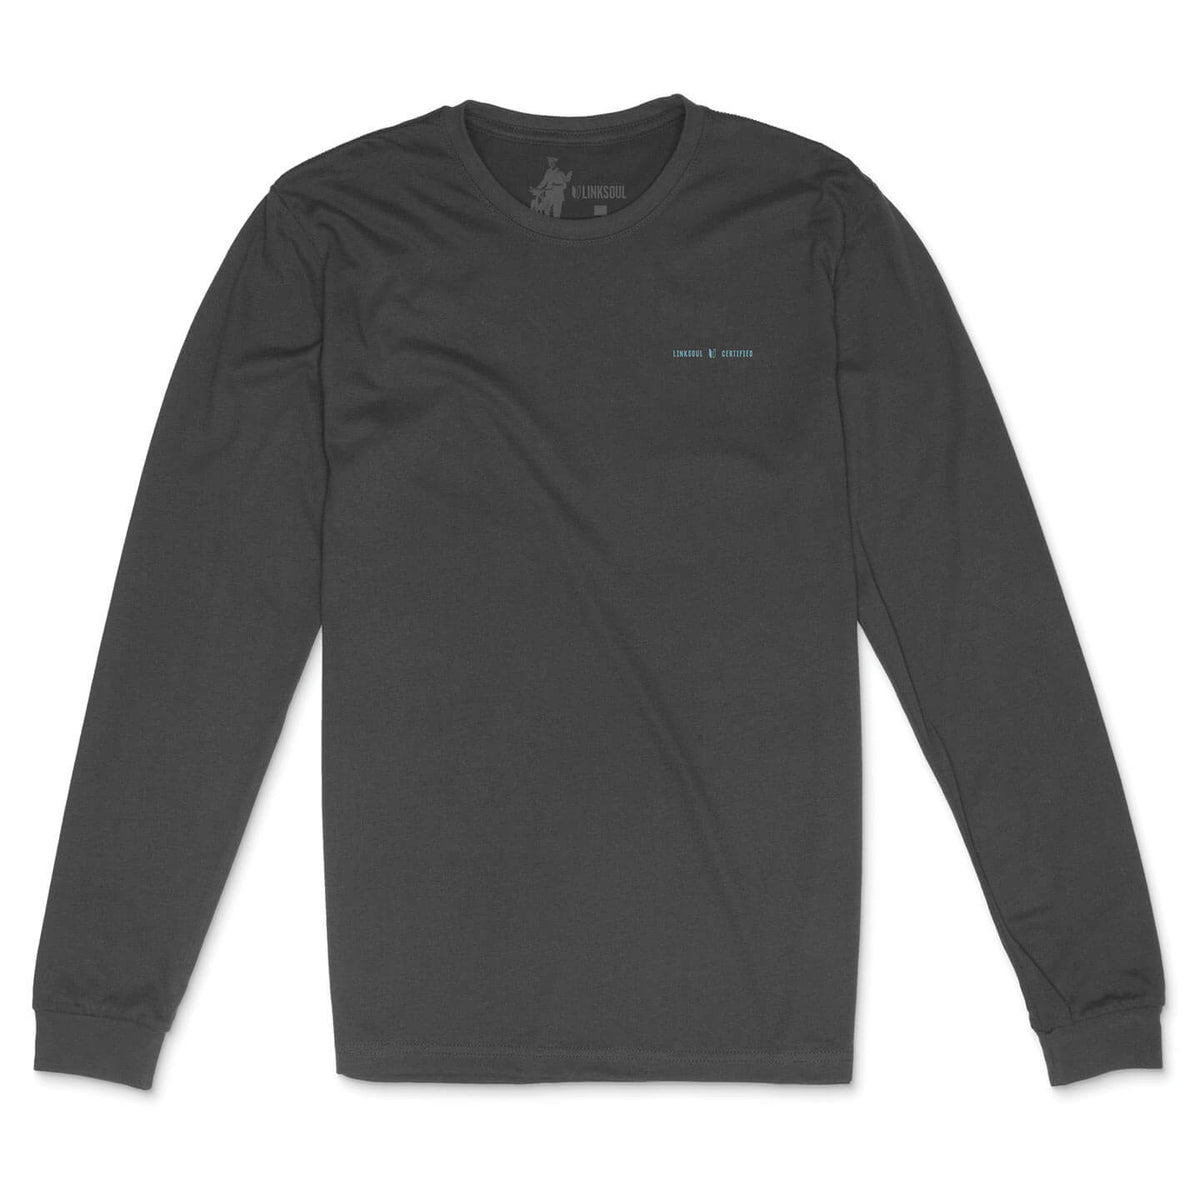 The Idle Long Sleeve Tee